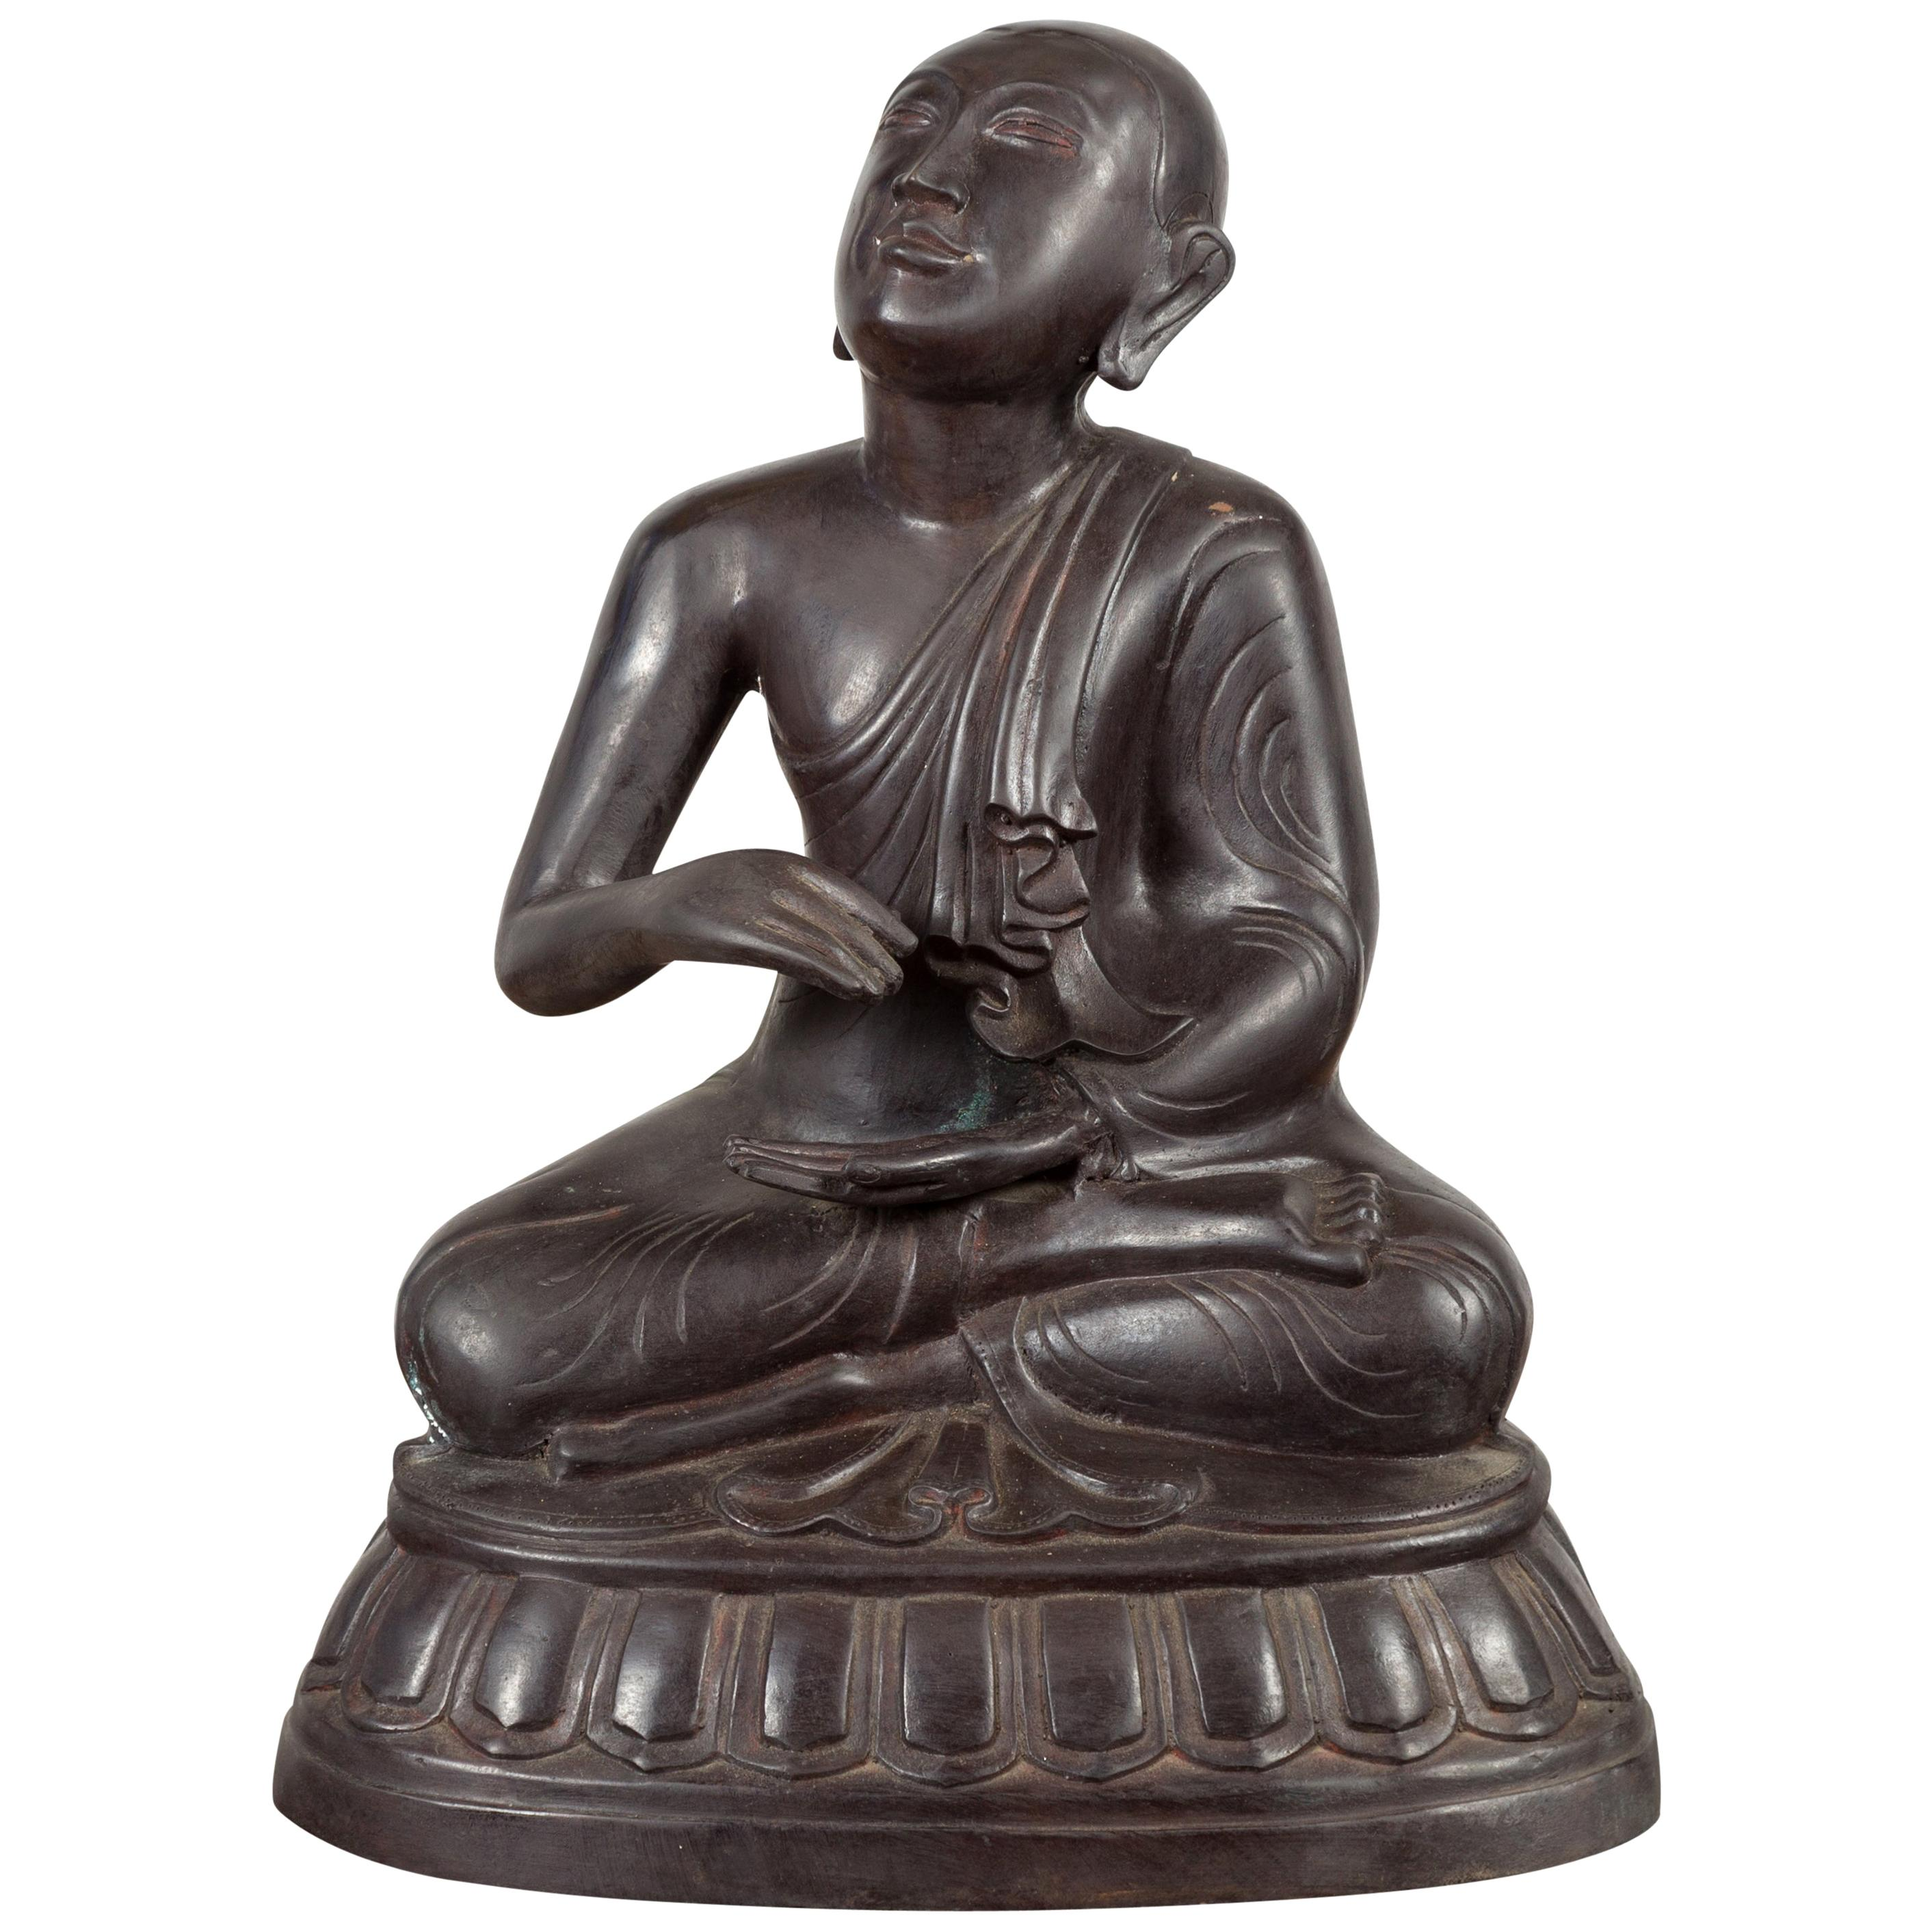 Vintage Bronze Lost Wax Sculpture Depicting a Praying Monk Sitting on a Base